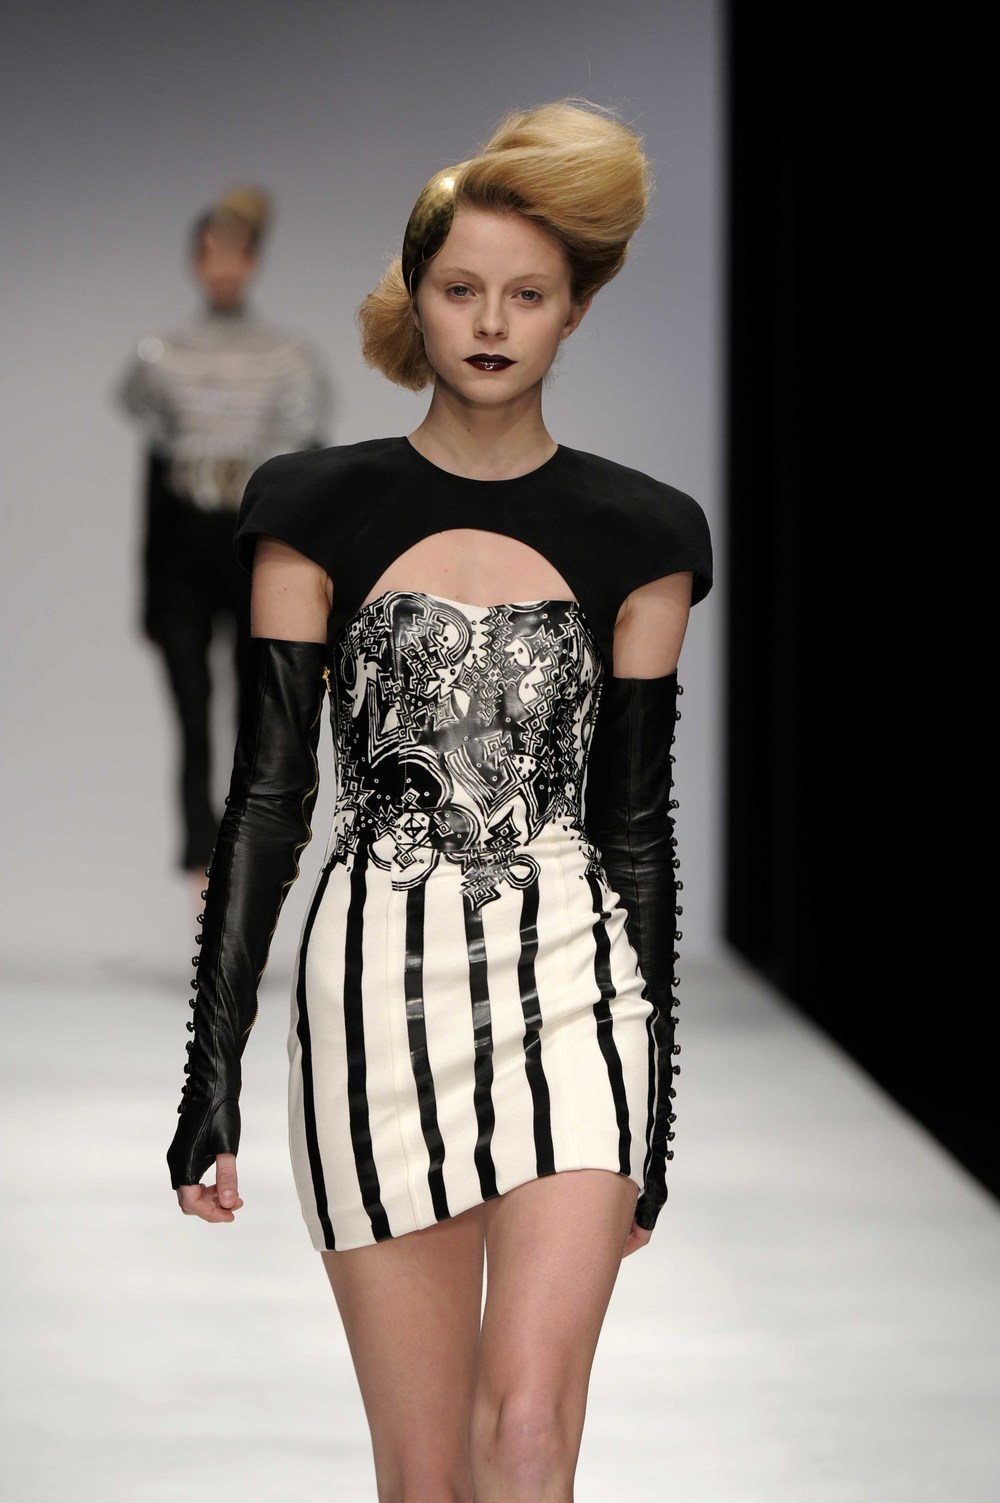 Signature Style - Mixing Black & White with exciting fabric designs